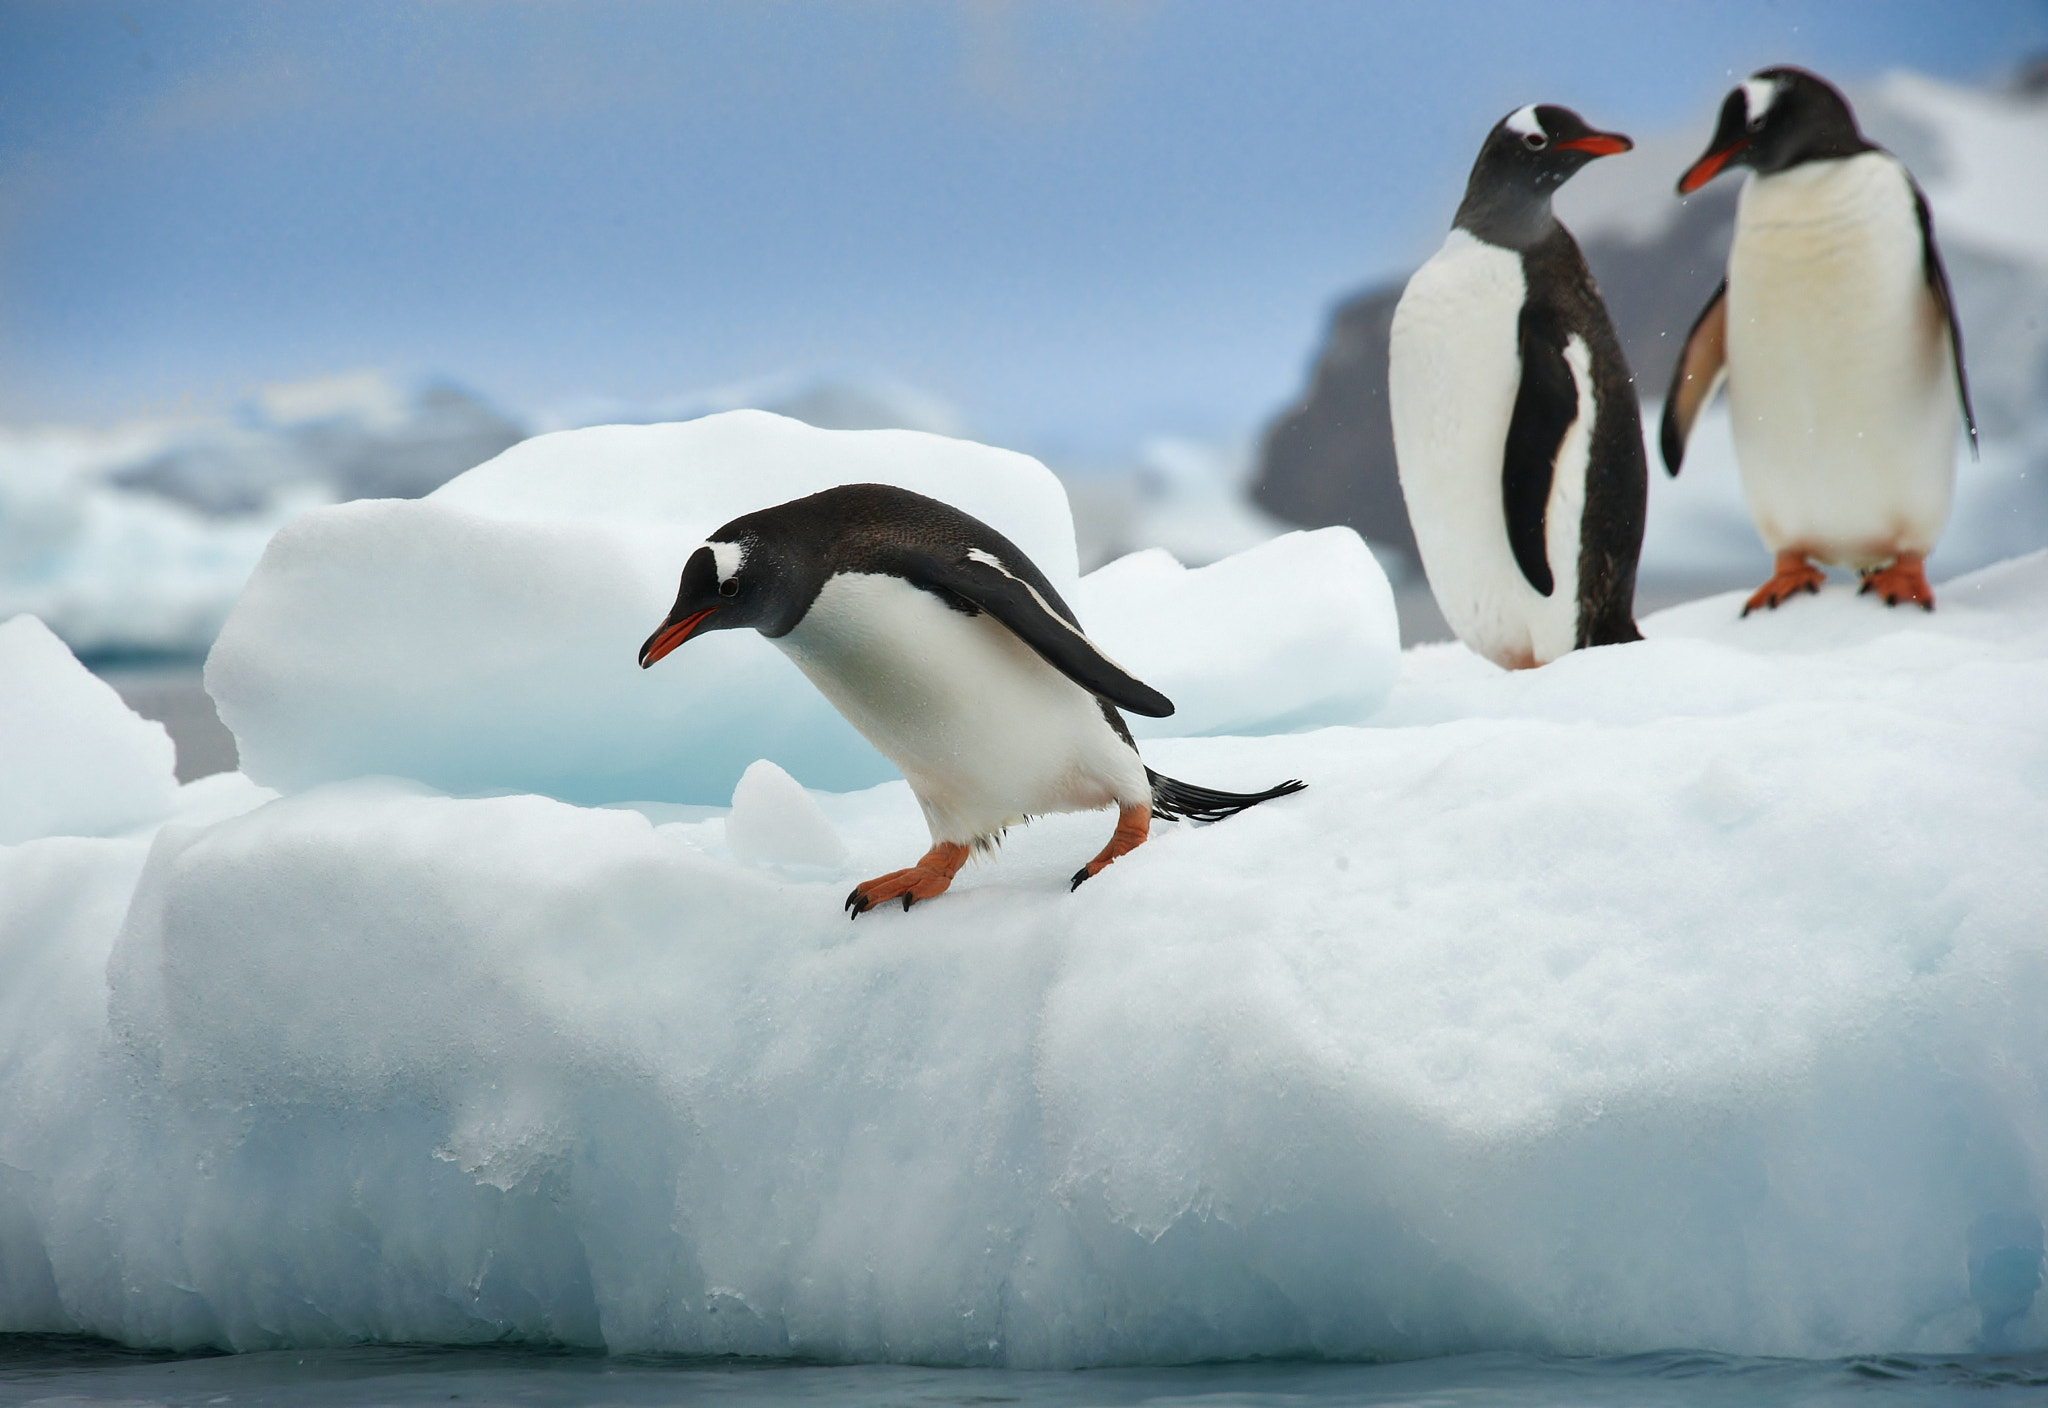 """Photograph """"He is crazy - It´s too hot in the water!"""" by Jørn Allan Pedersen on 500px"""